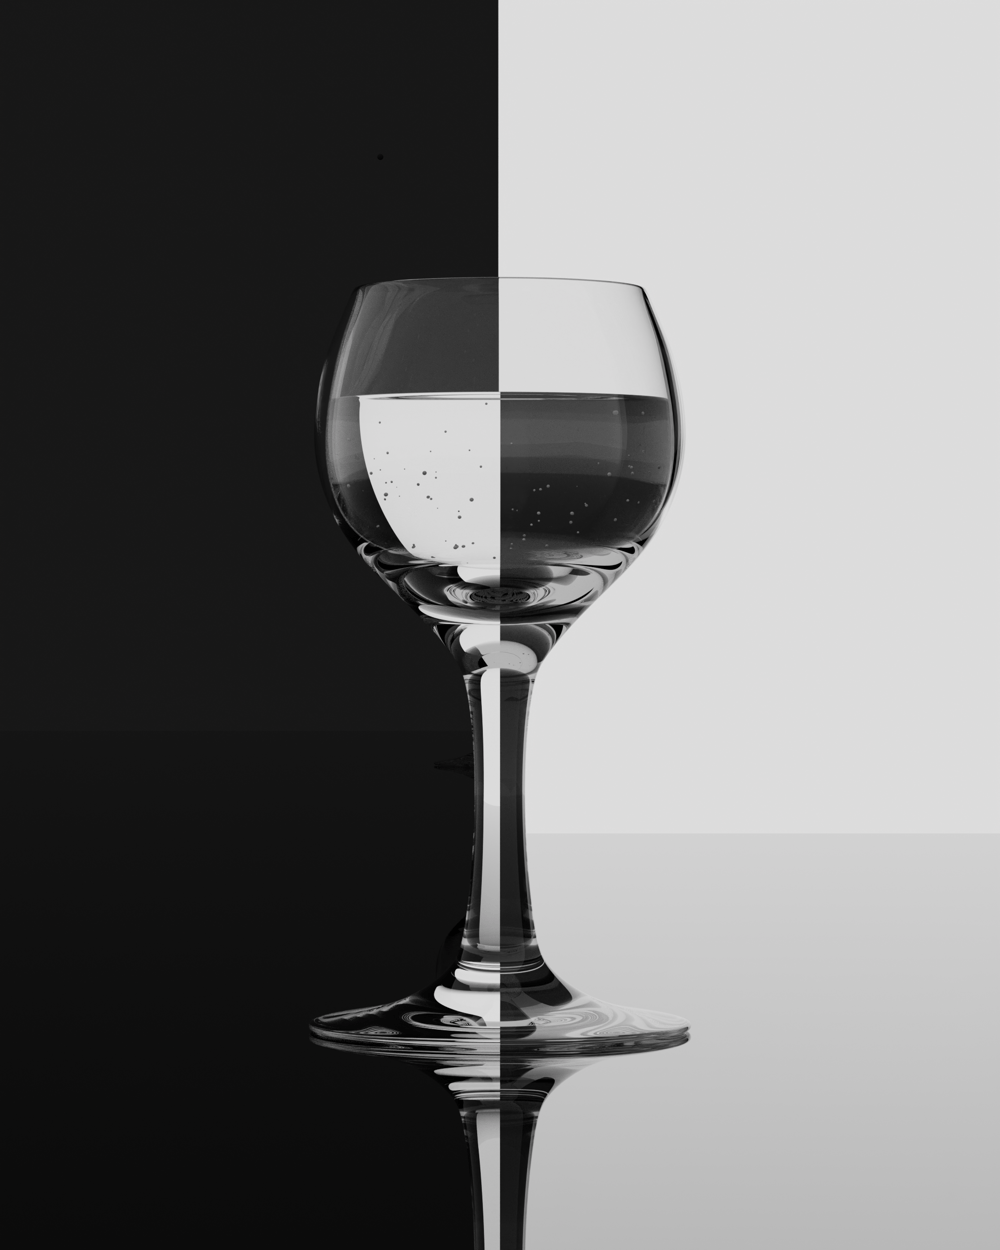 all renders - image 1 - student project